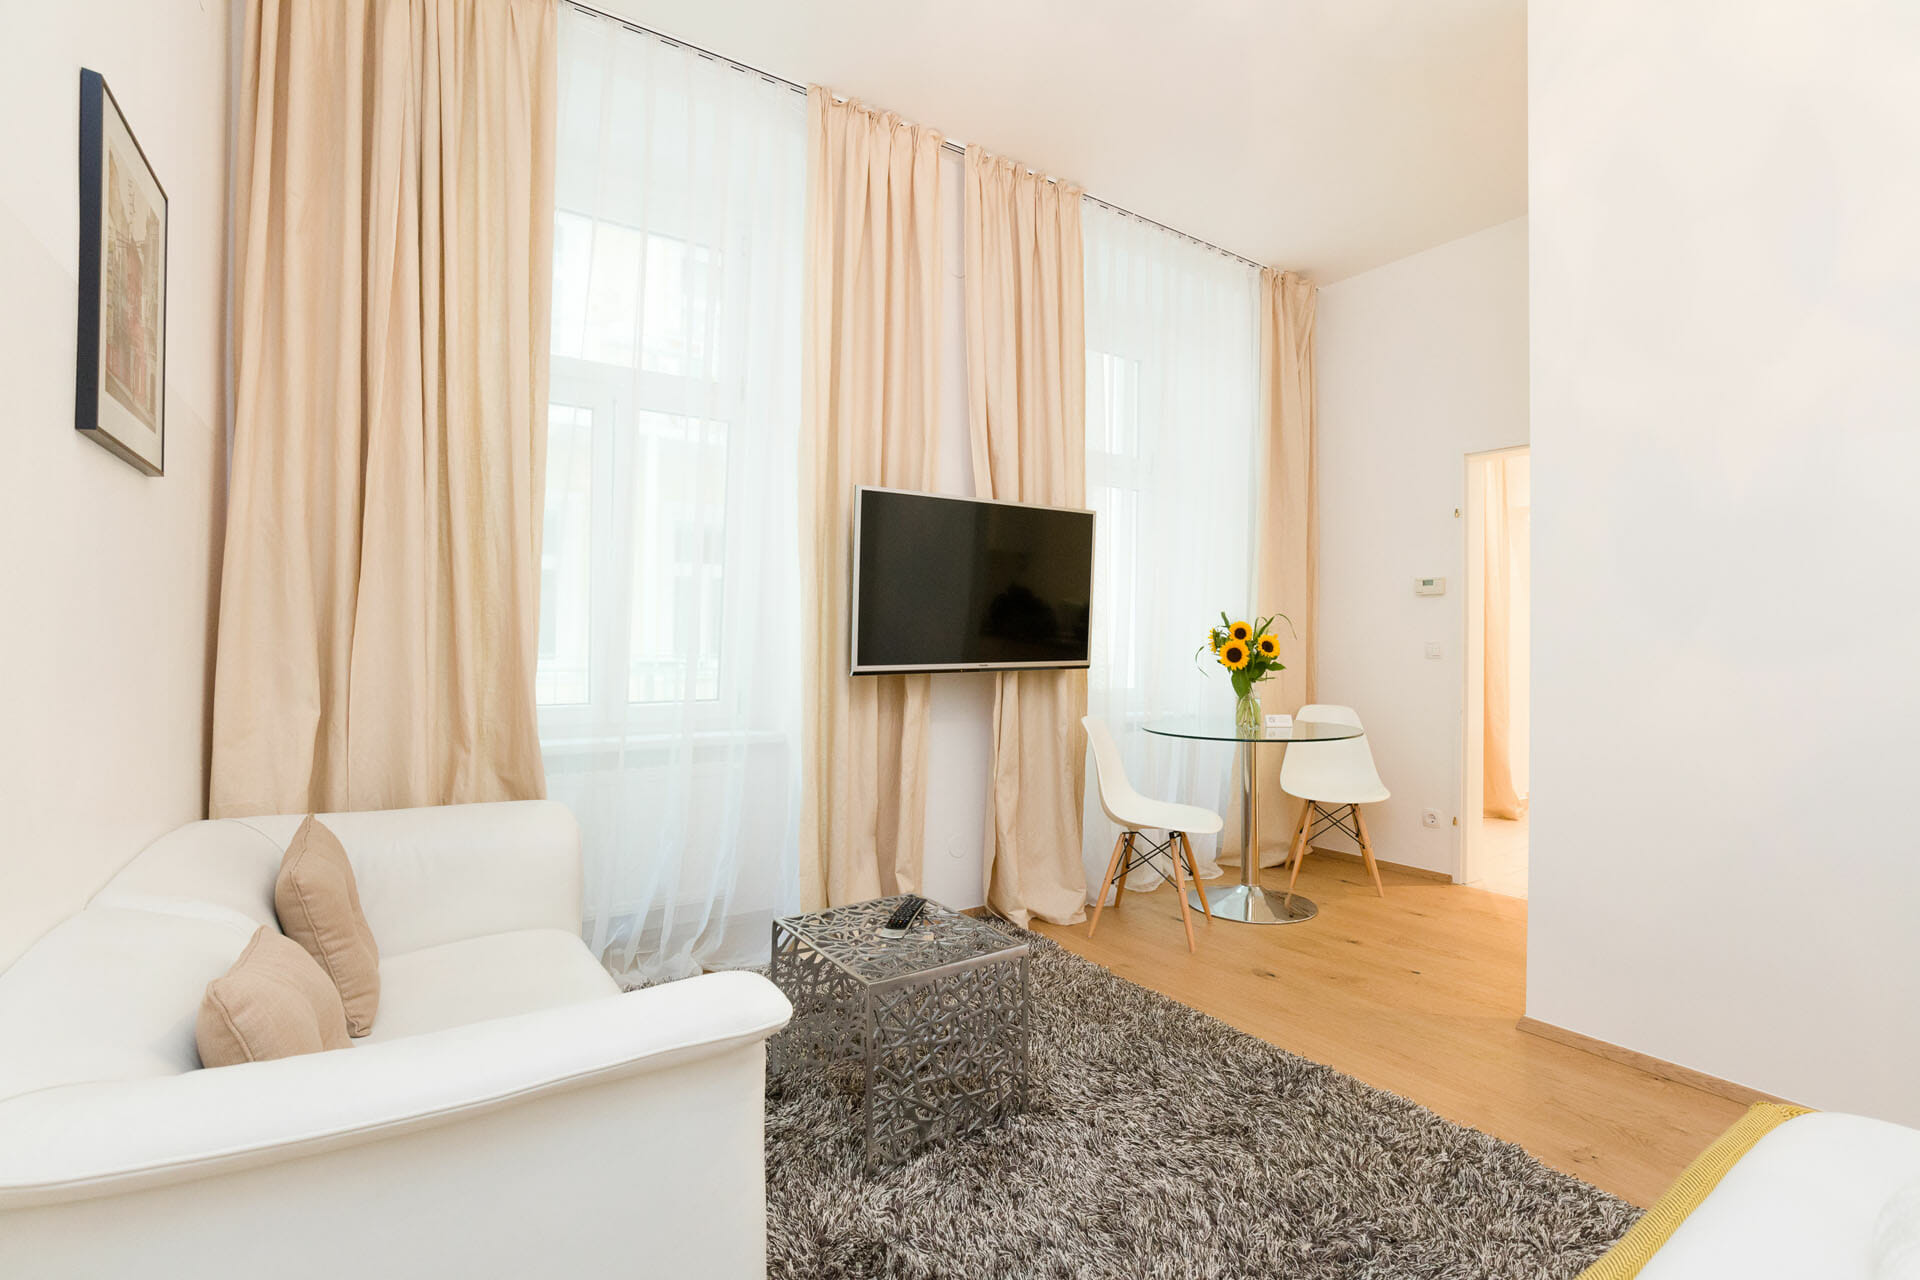 Prestige Apartments in Vienna Austria. Designer Apartment close to Main Attractions.Alser Strasse 14.Chic Vienna apartment in Alsergrund near the university.Alser Strasse 14. Internet, Digital Cable TV, Fully equipped kitchen